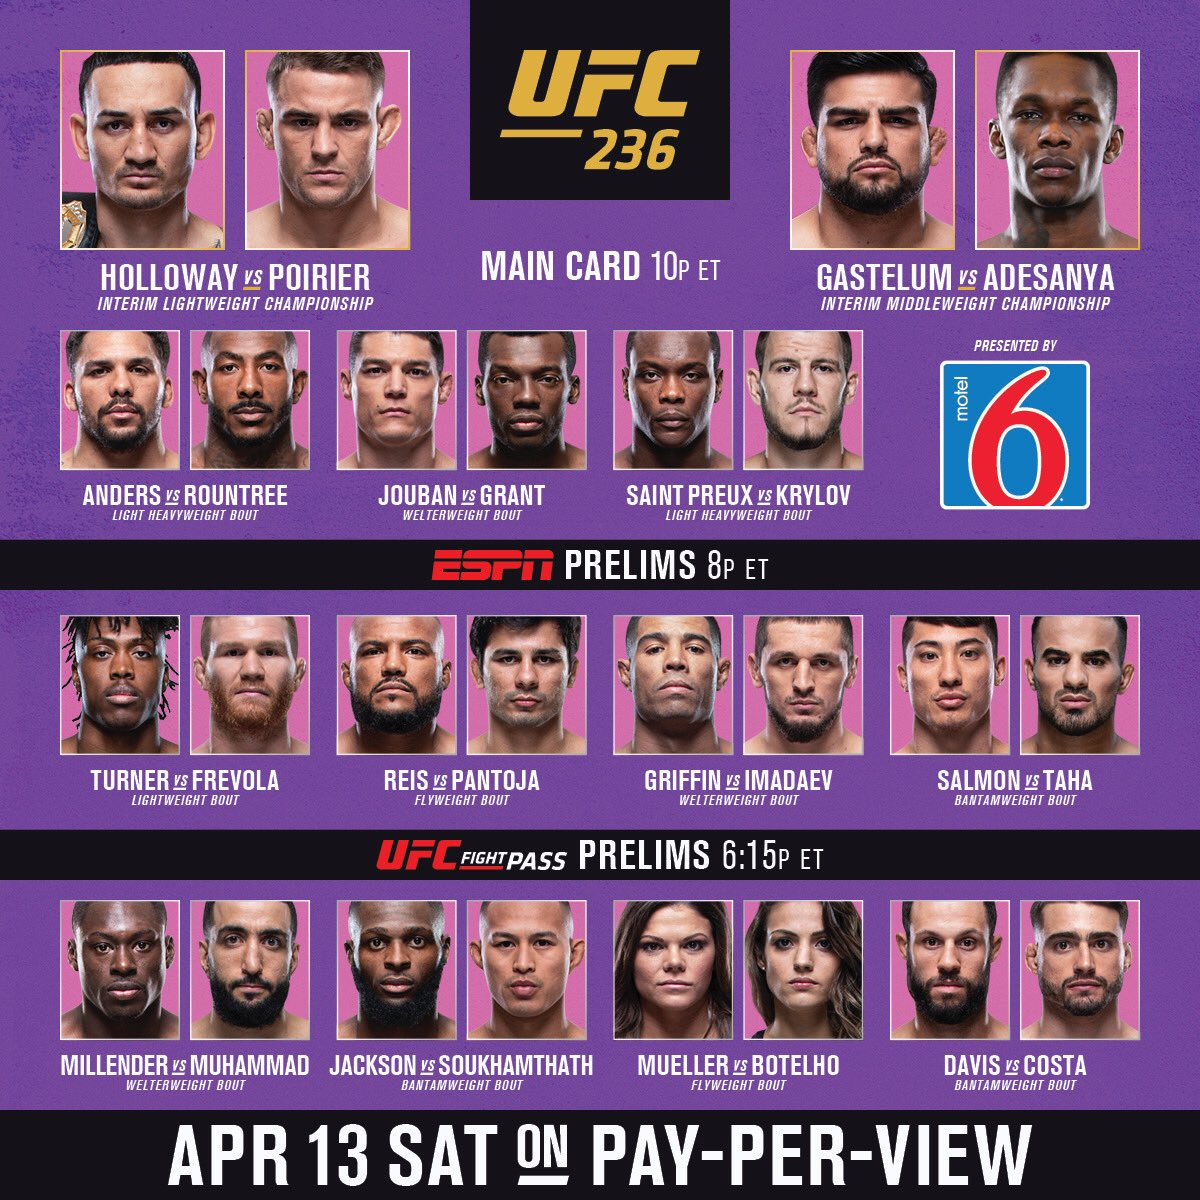 #UFC236 Fight Pass prelims start NOW on http://UFC.tv !!!